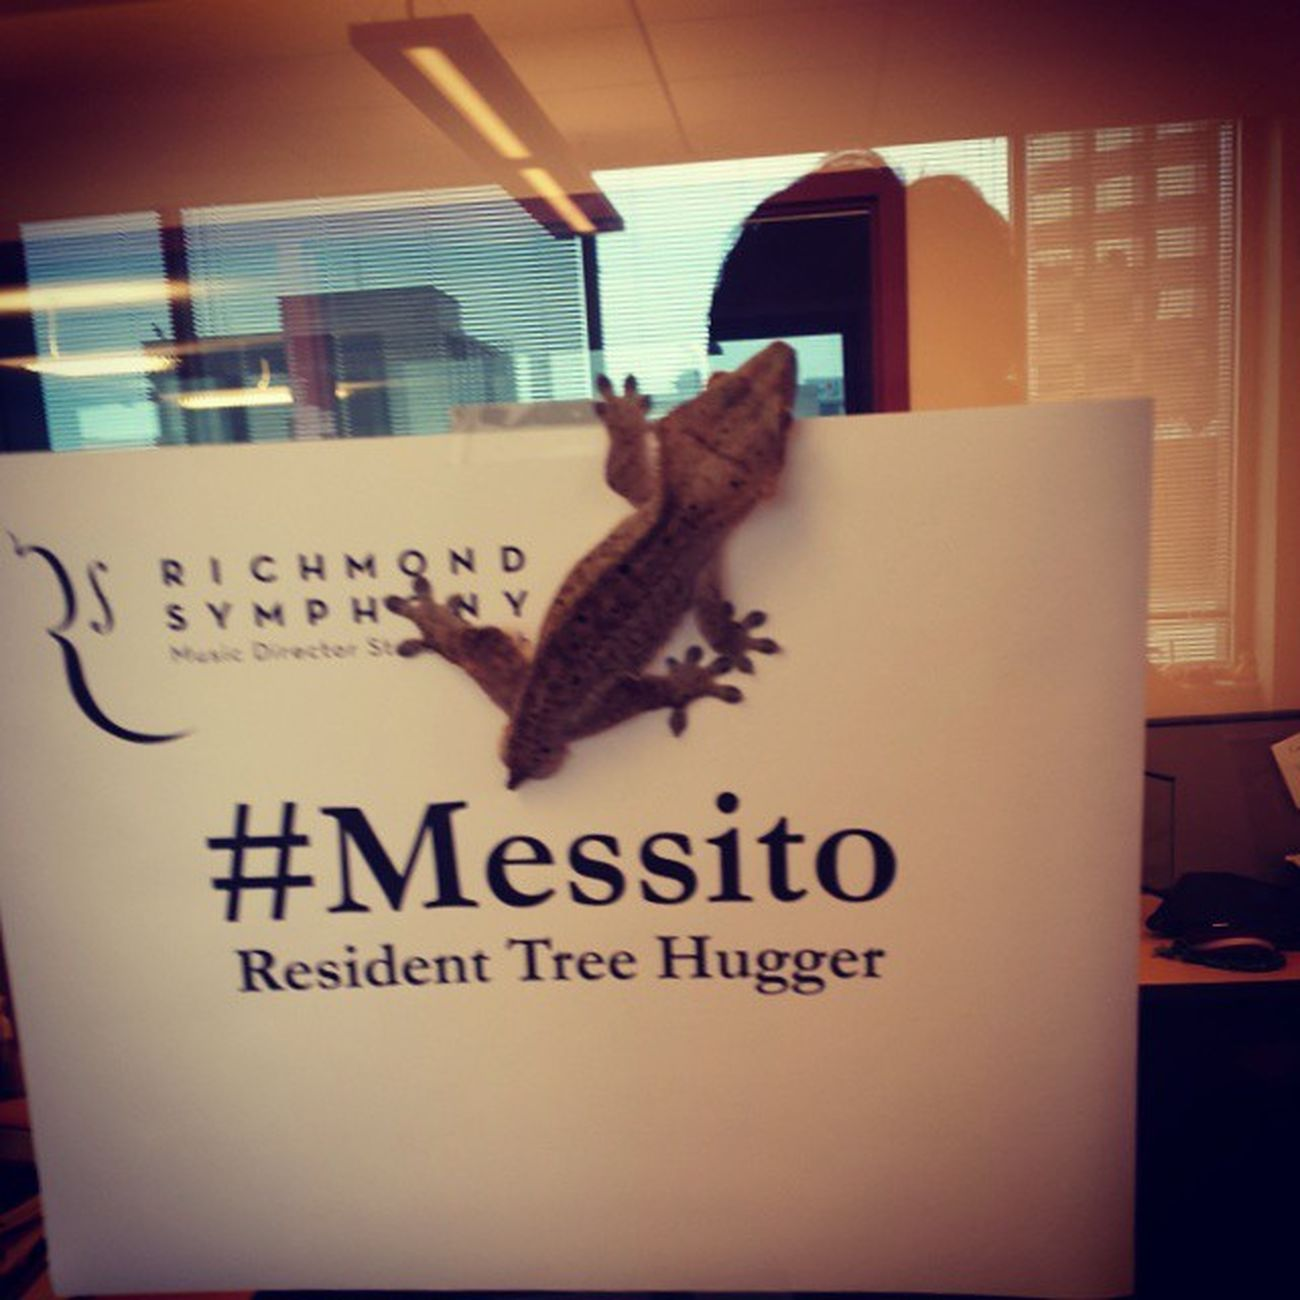 Messito first day at work. Doing paperwork, filling out tax documents, signing up for insurance, getting a business card and decorating office. CrestedGecko RichmondSymphony VirginiaHumidityIsGoodForMySkin TreeHugger